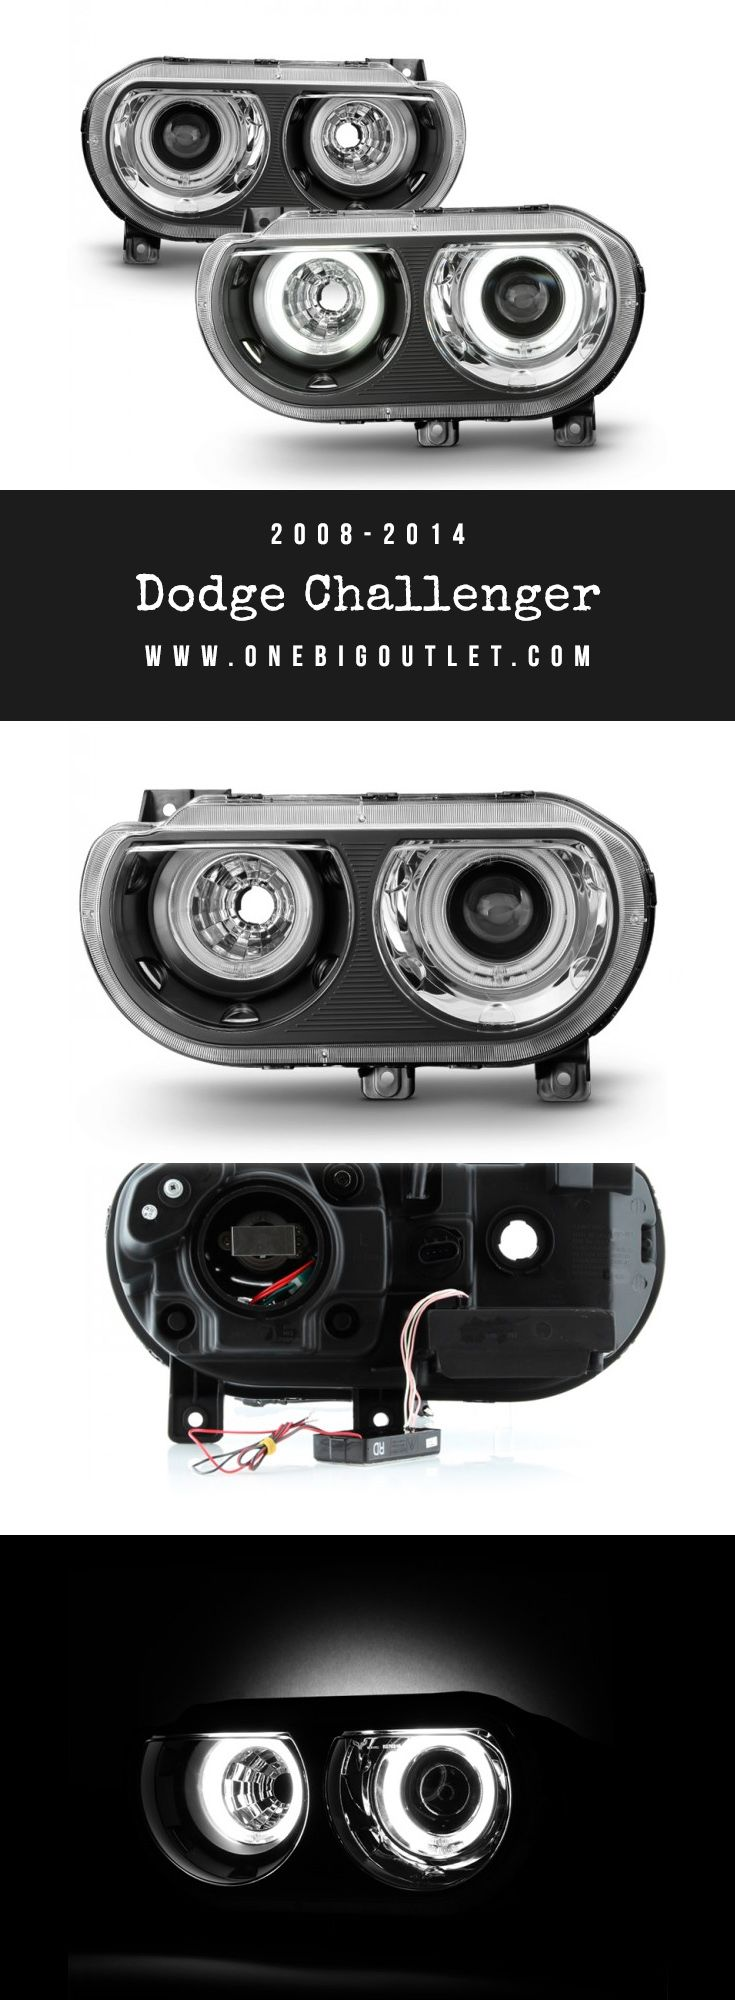 2008-2014 Dodge Challenger | Halo Projector Headlights in Black | Dodge Challenger | Headlights